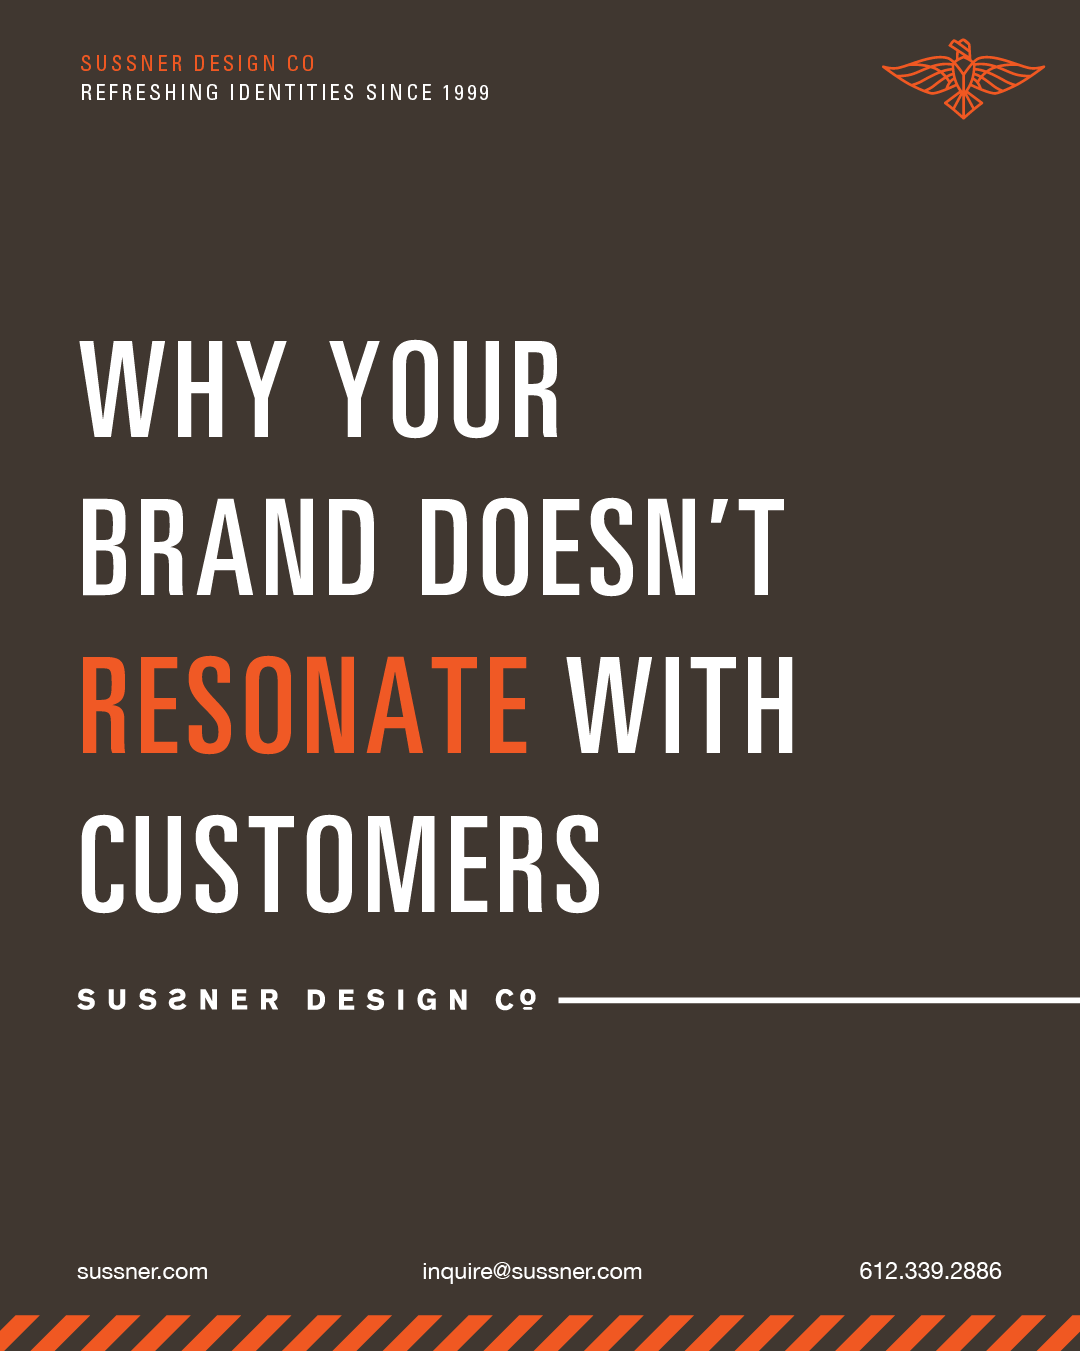 Why your brand doesn't resonate with customers